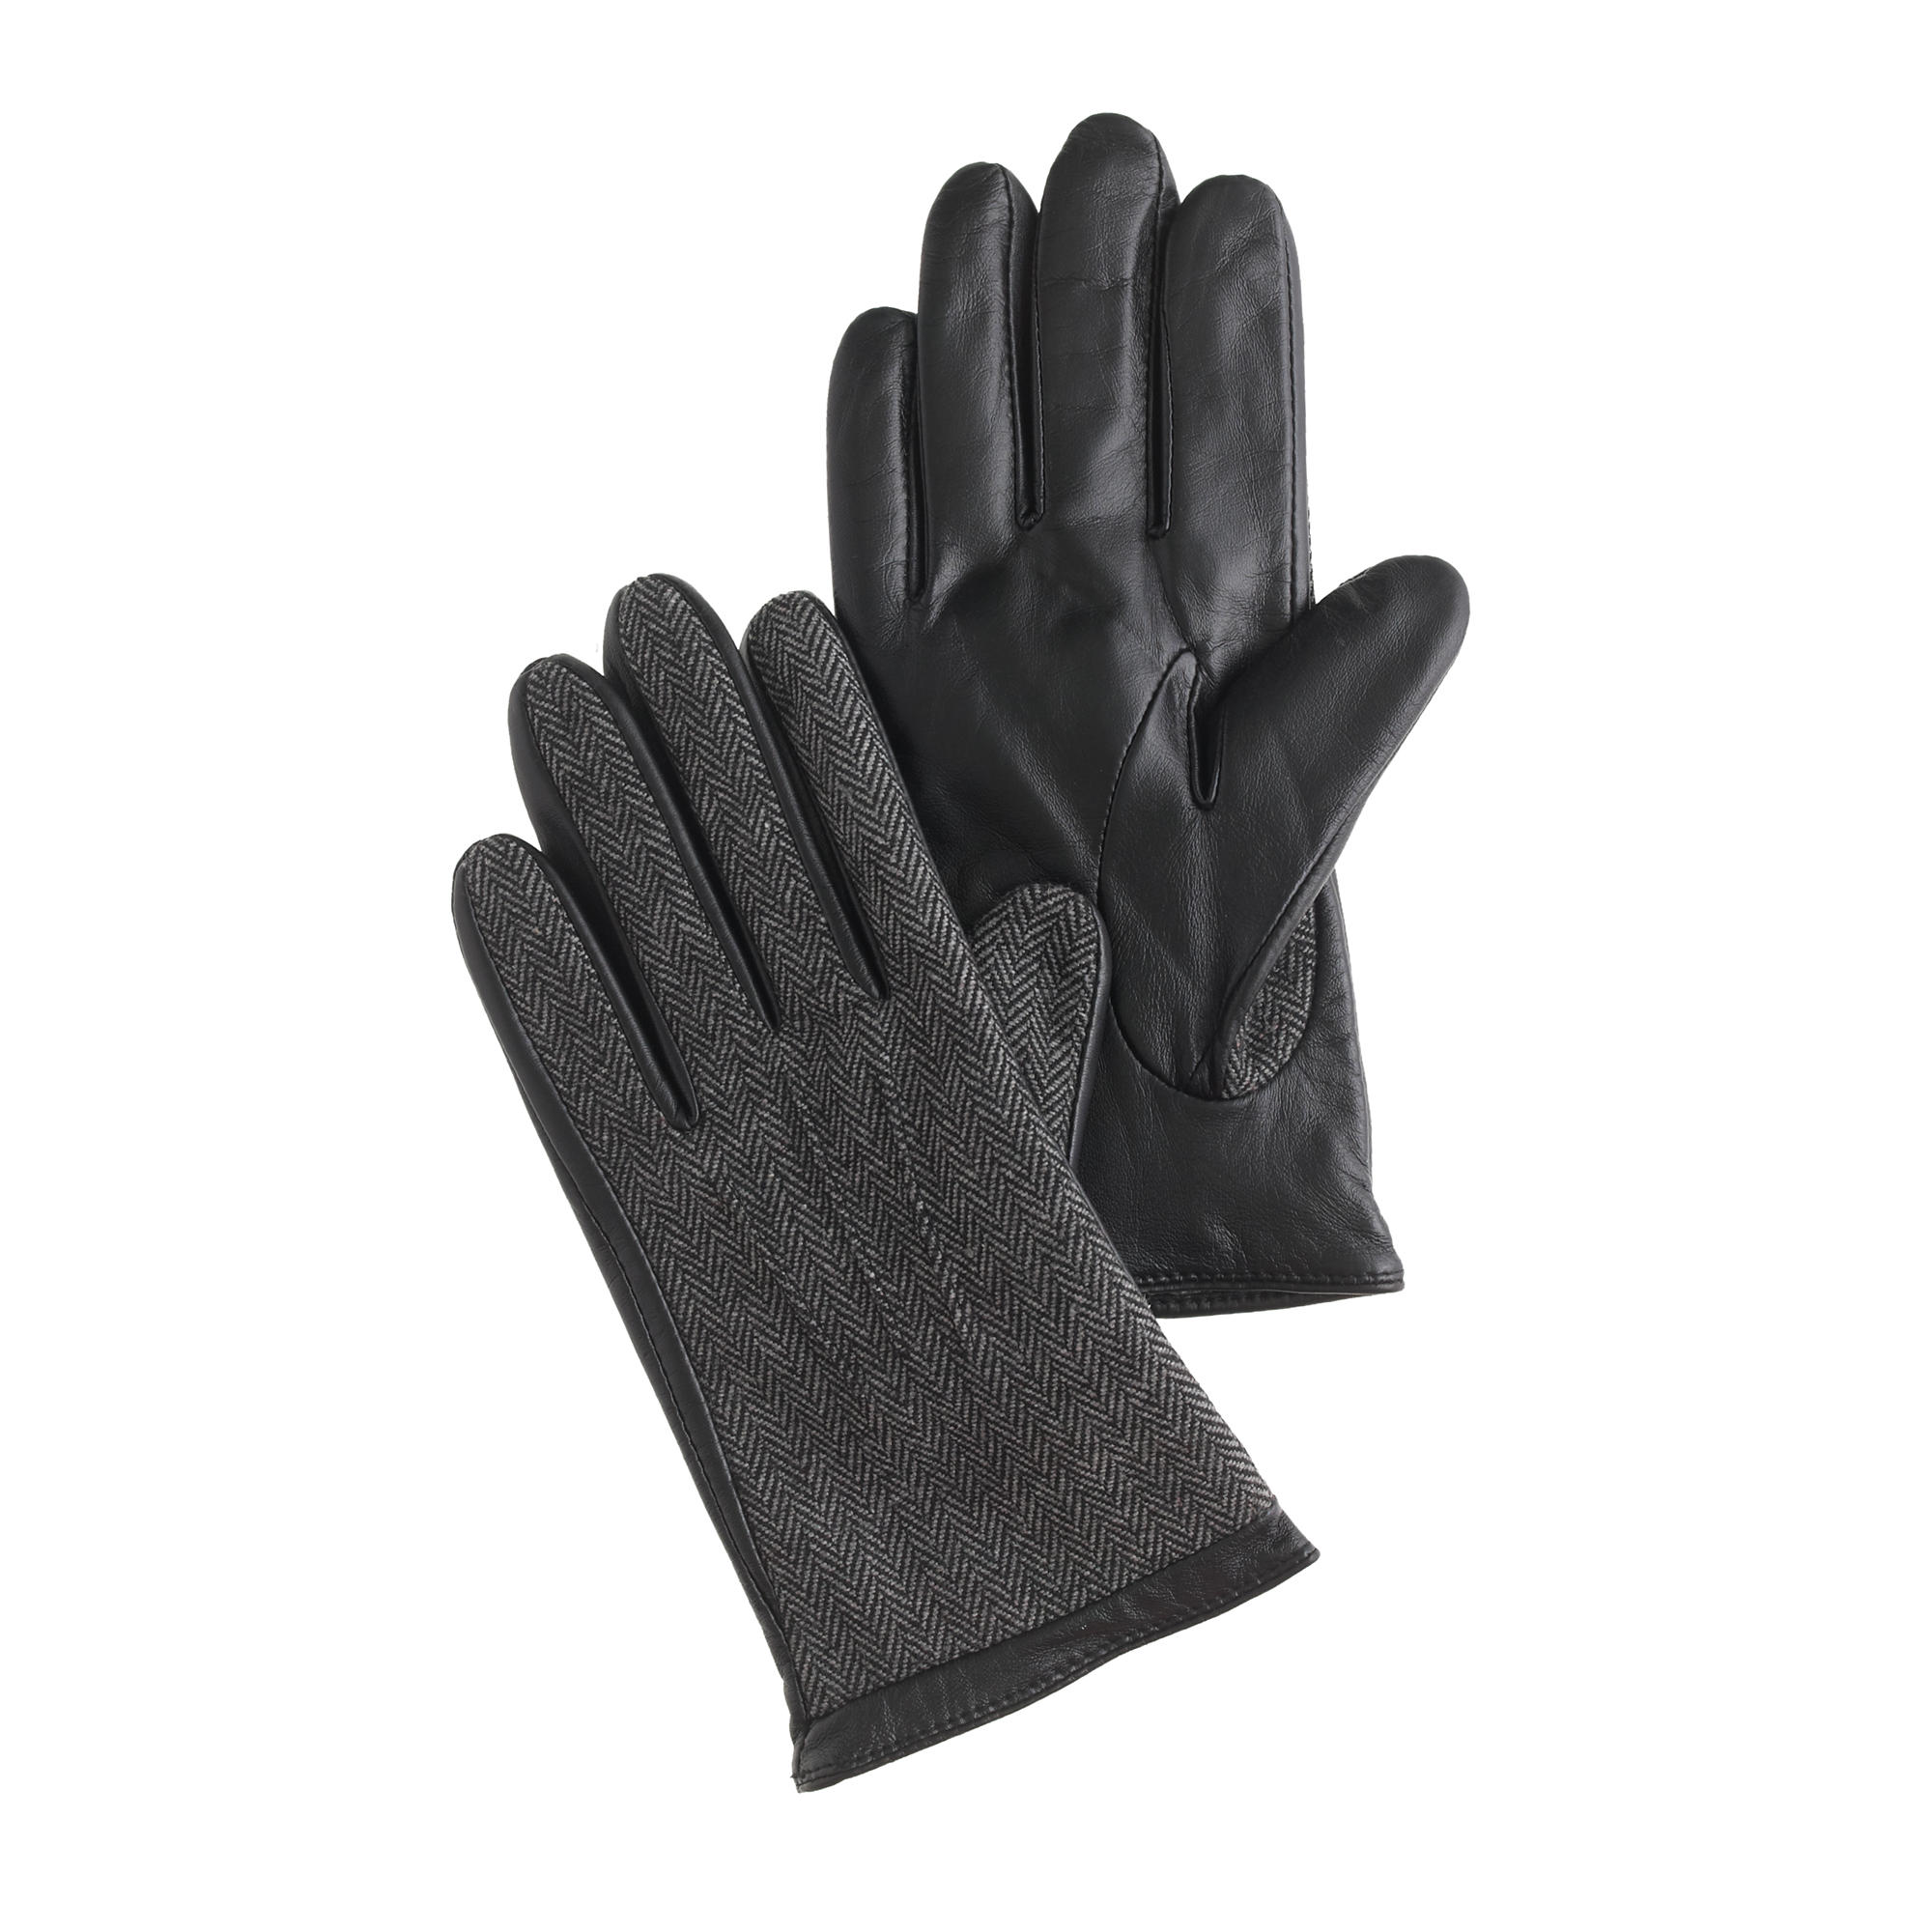 OZERO Touch Screen Gloves for Men, Cold Weather Windproof Thermal Glove for Smartphone Texting - Non-Slip Silicone Gel and Hand Warmers for Mens' Cycling and Running by OZERO $ - $ $ 14 99 - $ 15 99 Prime.